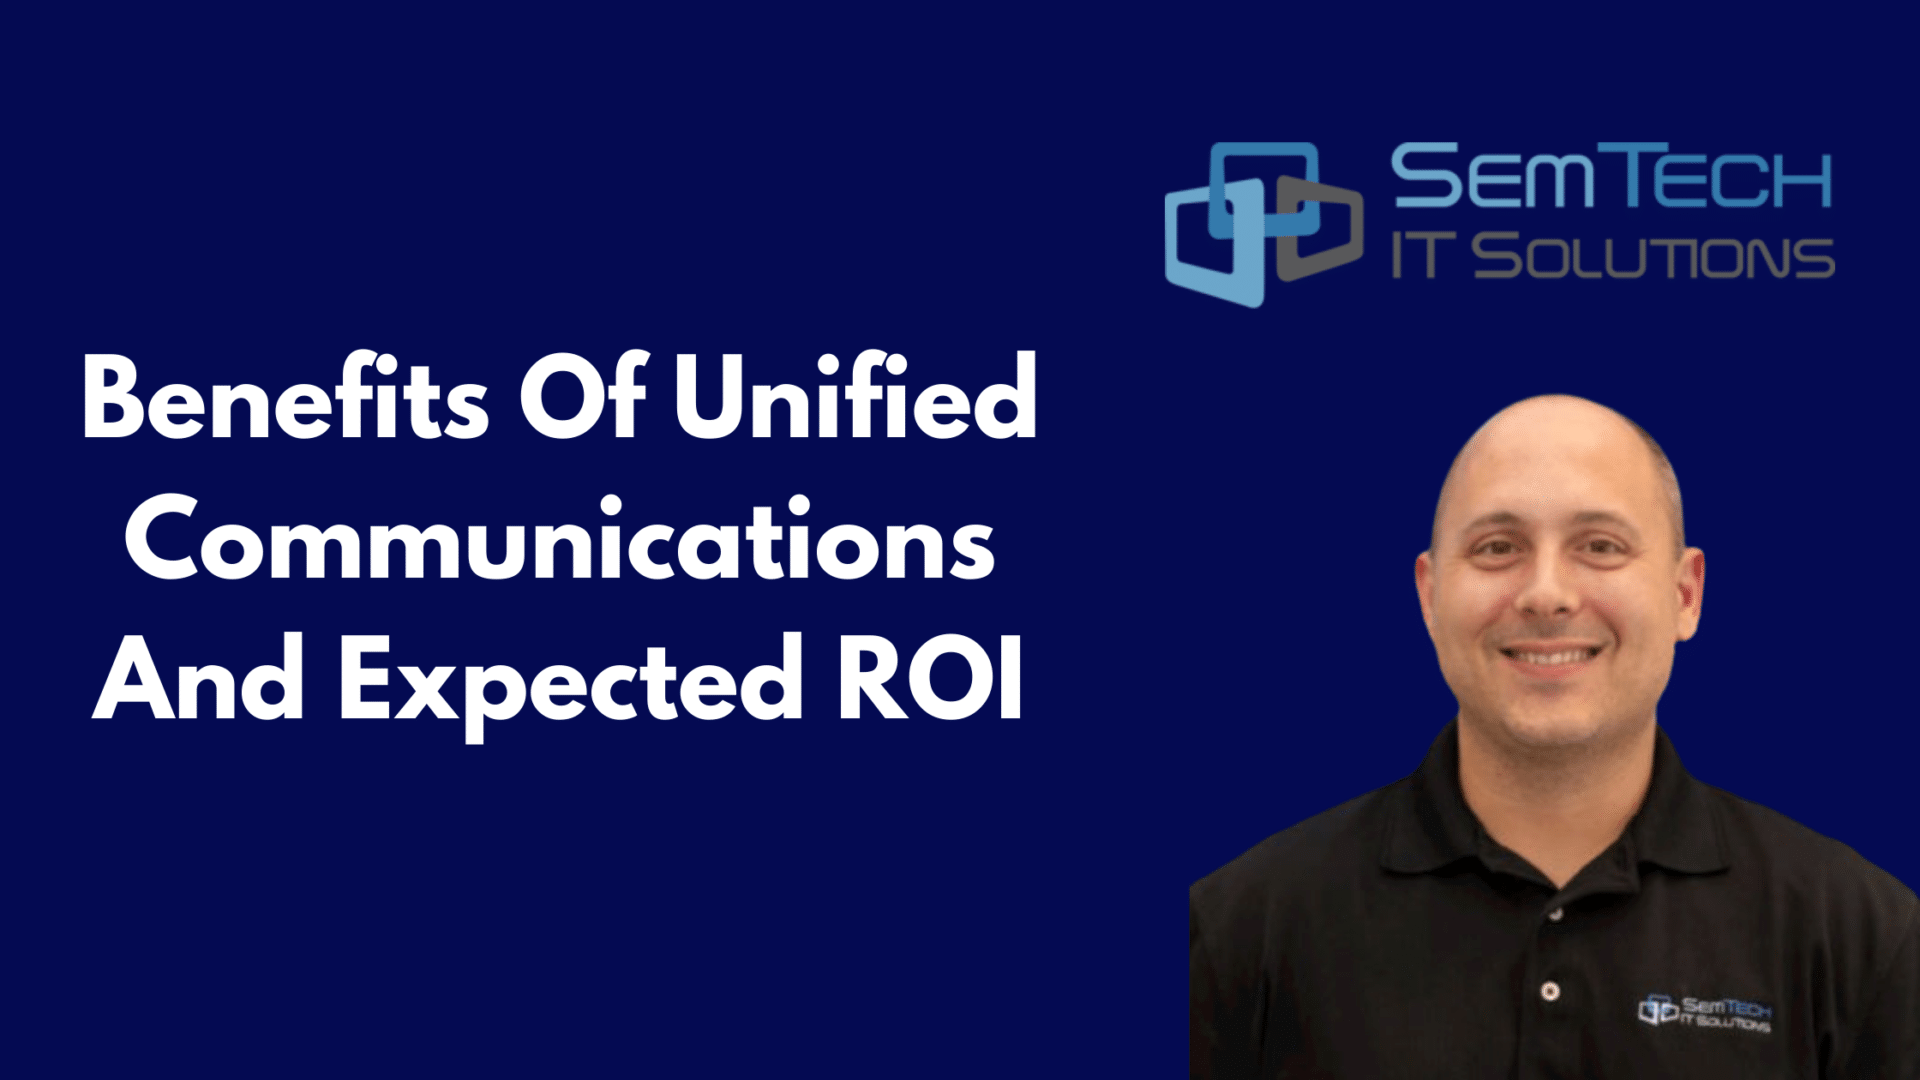 Benefits Of Unified Communications And Expected ROI